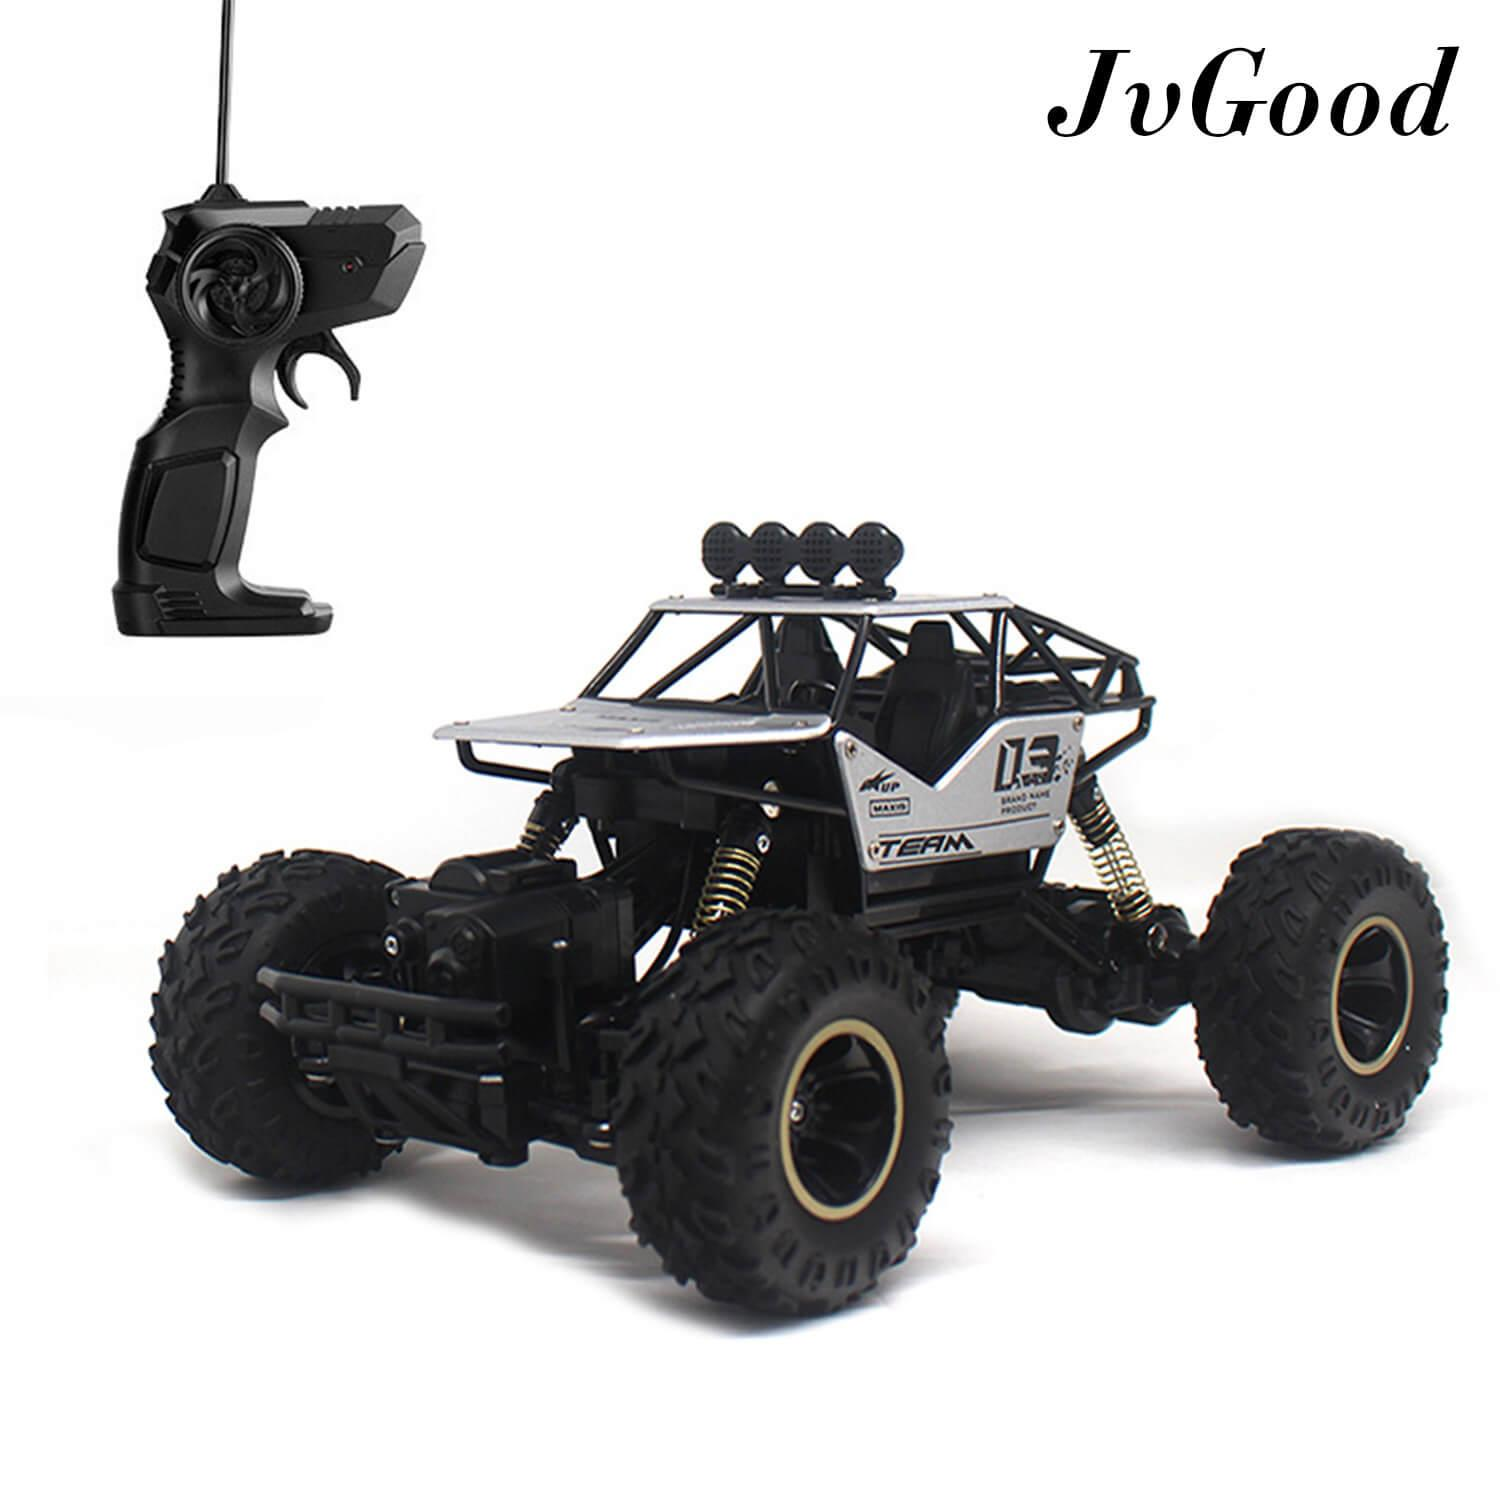 Jvgood Electric Rc Vehicle Rock Crawler Alloyed Rc Car Remote Control Toy Cars Radio Controlled Drive Off-Road Toys Off-Road Truck 4 Wheels Drive Suv Buggy Car 1:16 Scale Rc Climbing Car For Boys Kids By Jvgood.